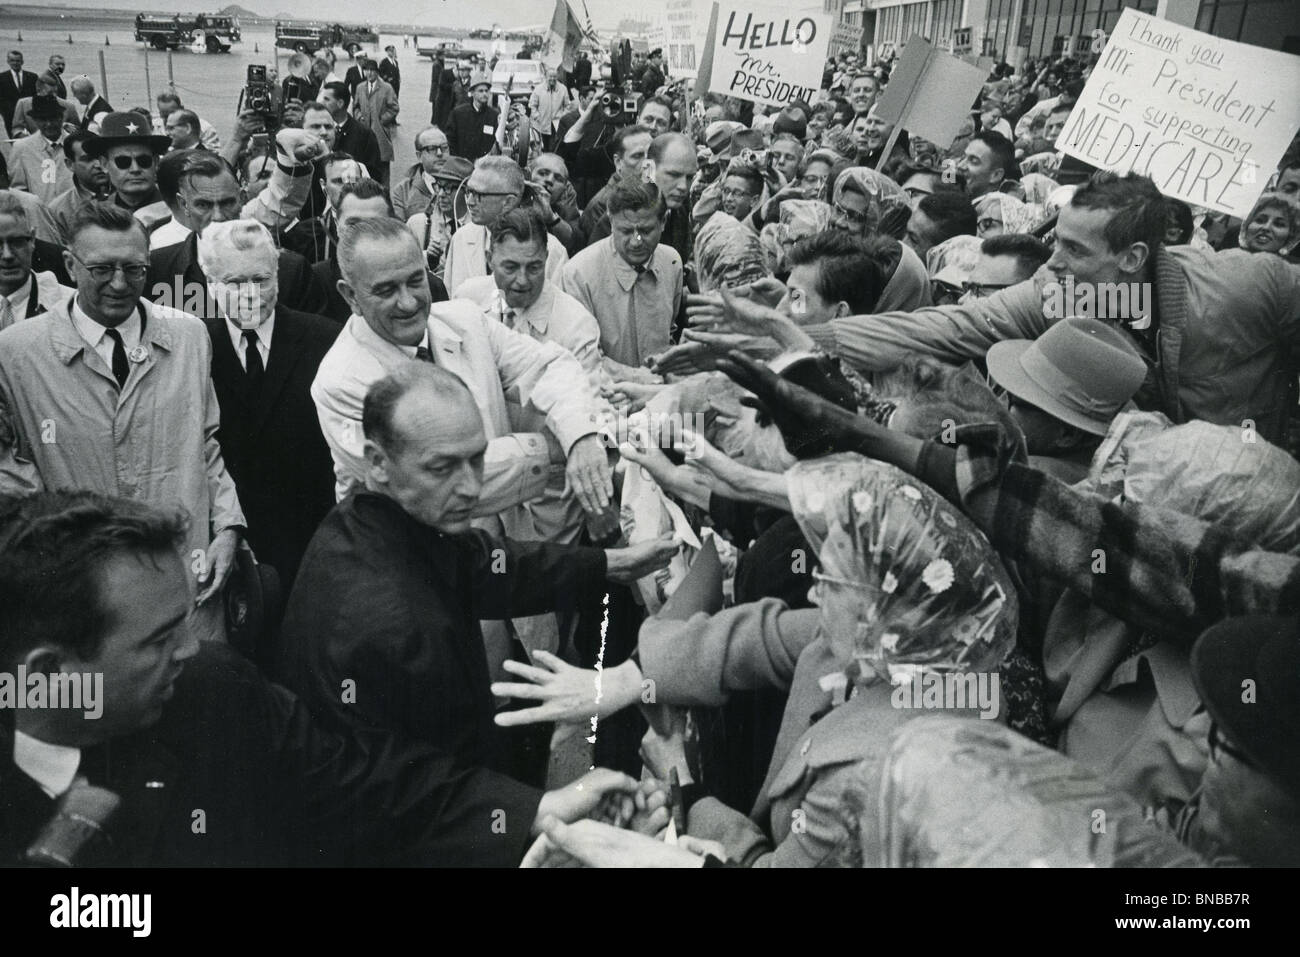 LYNDON B JOHNSON campaigning in the 1964 US Presidential elections which he won - Stock Image